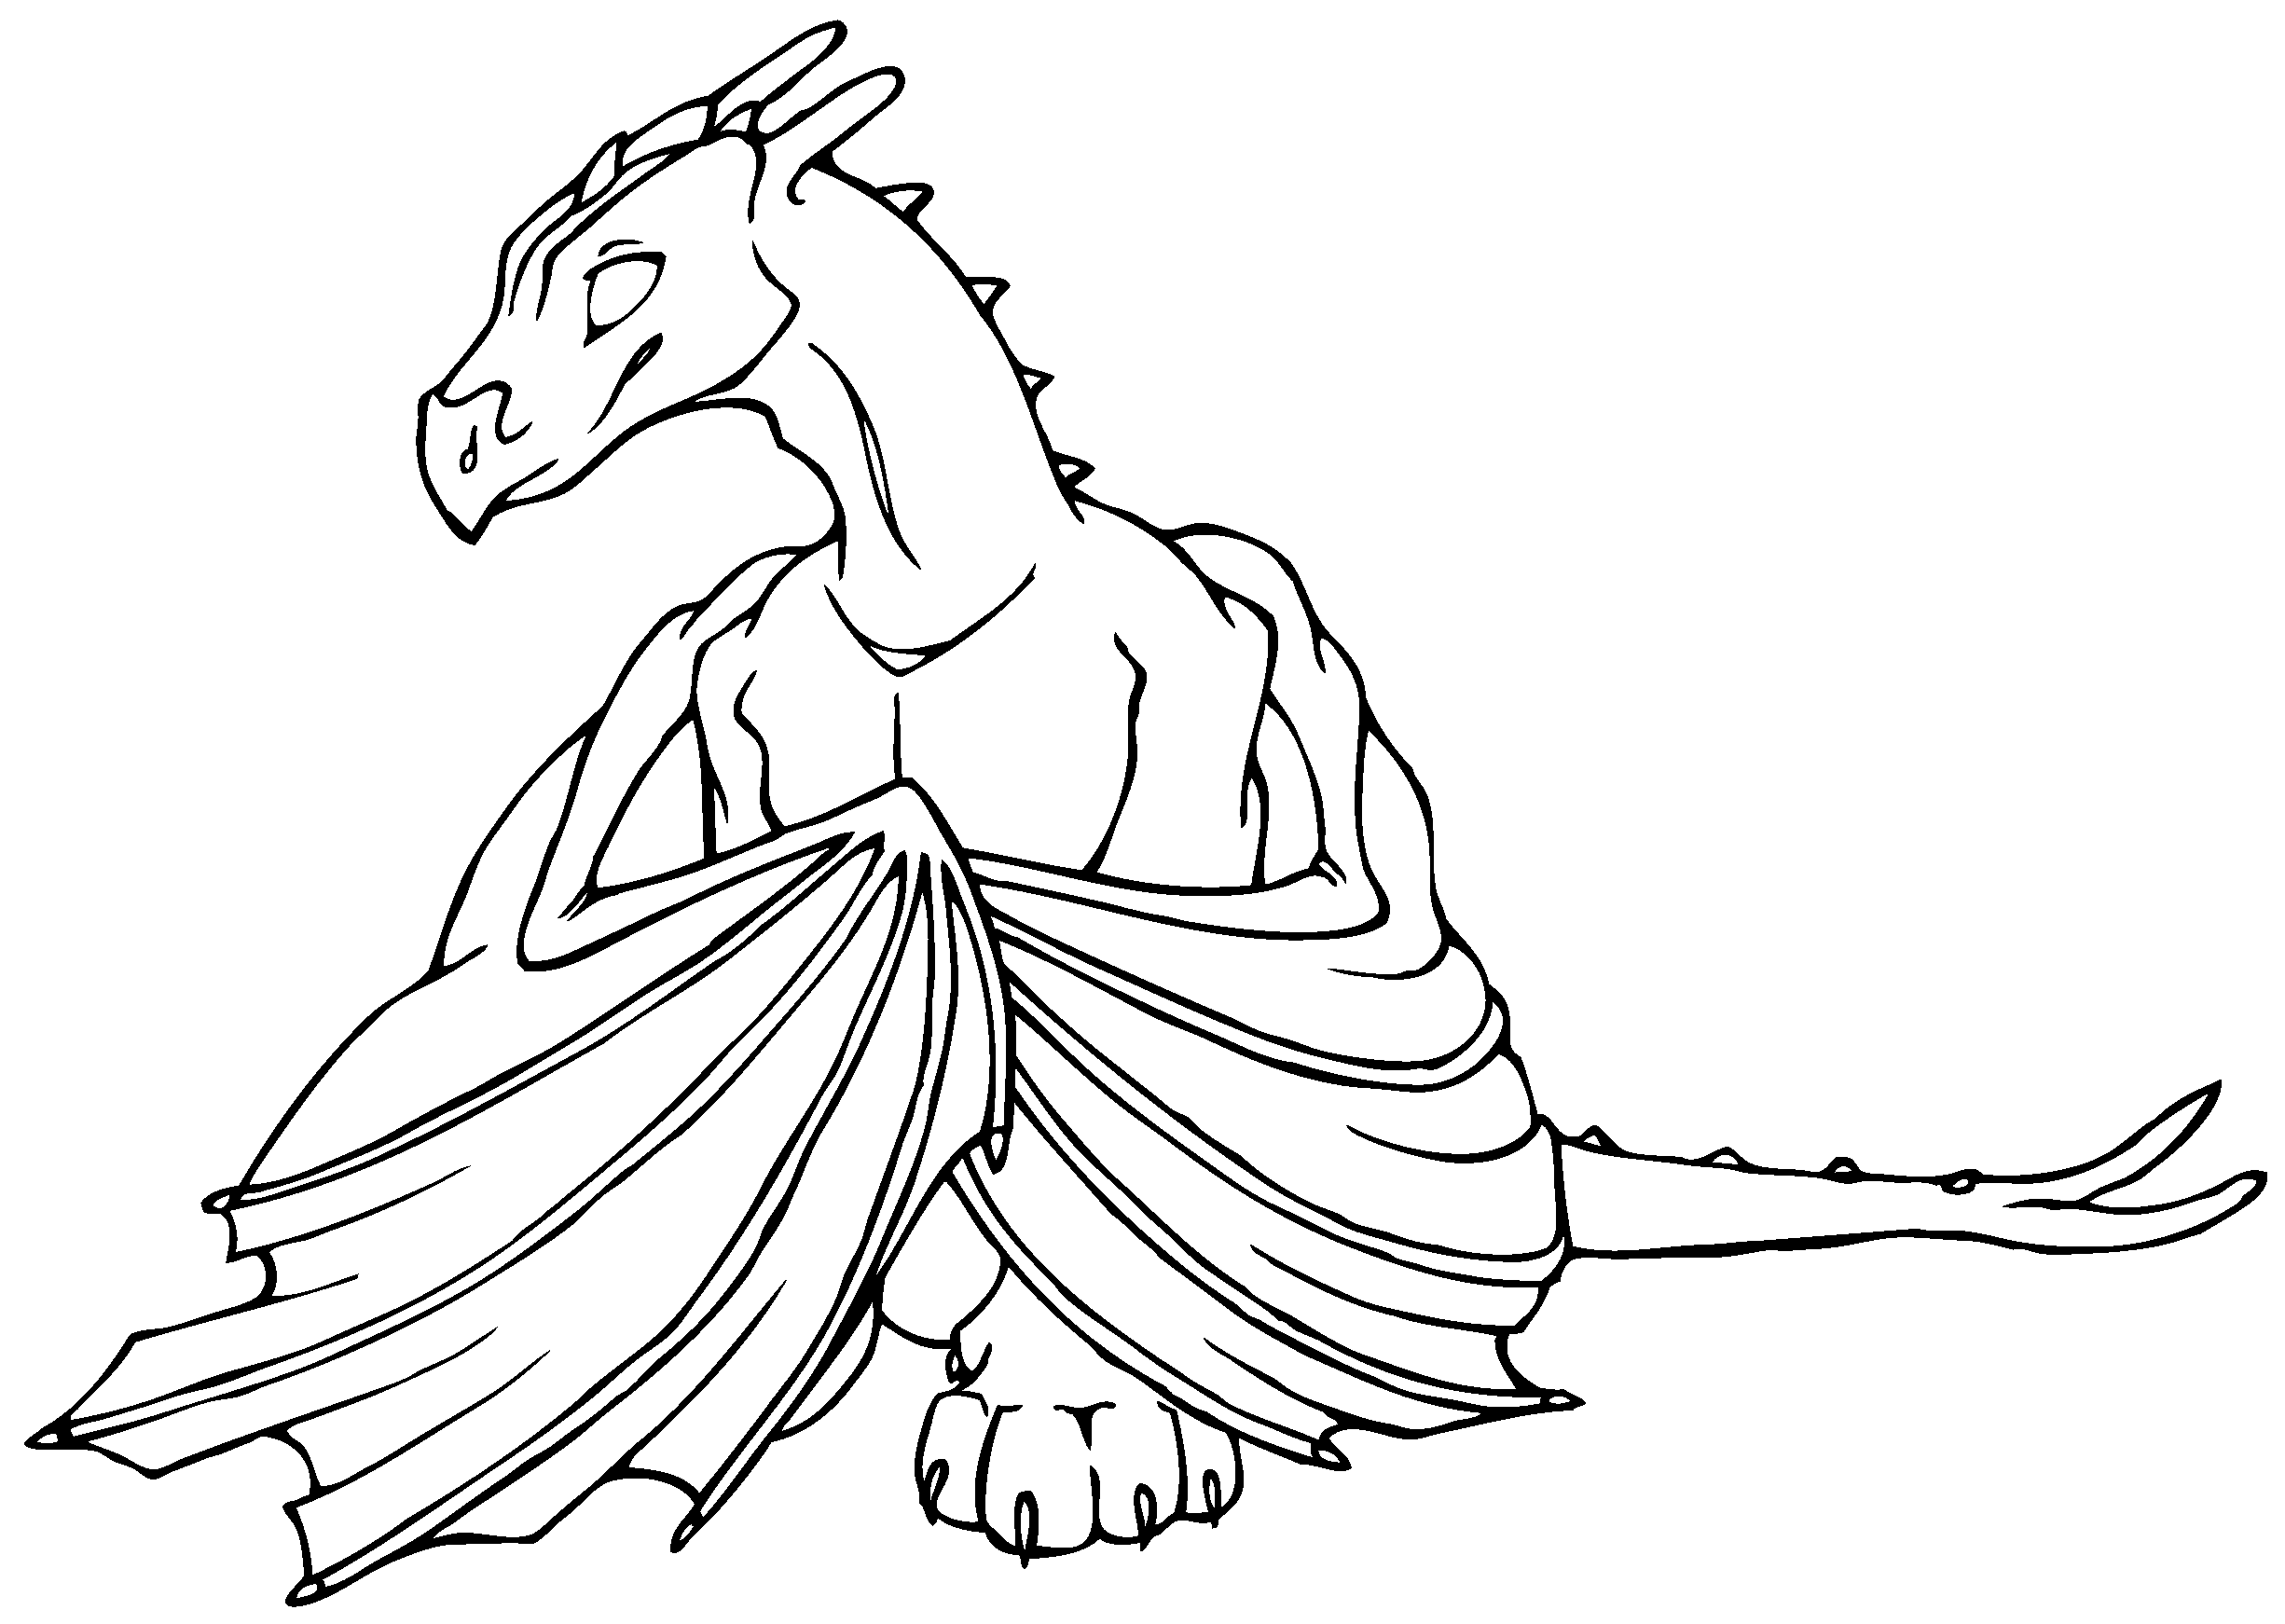 dragon coloring book xanadu weyr - Dragon Coloring Books